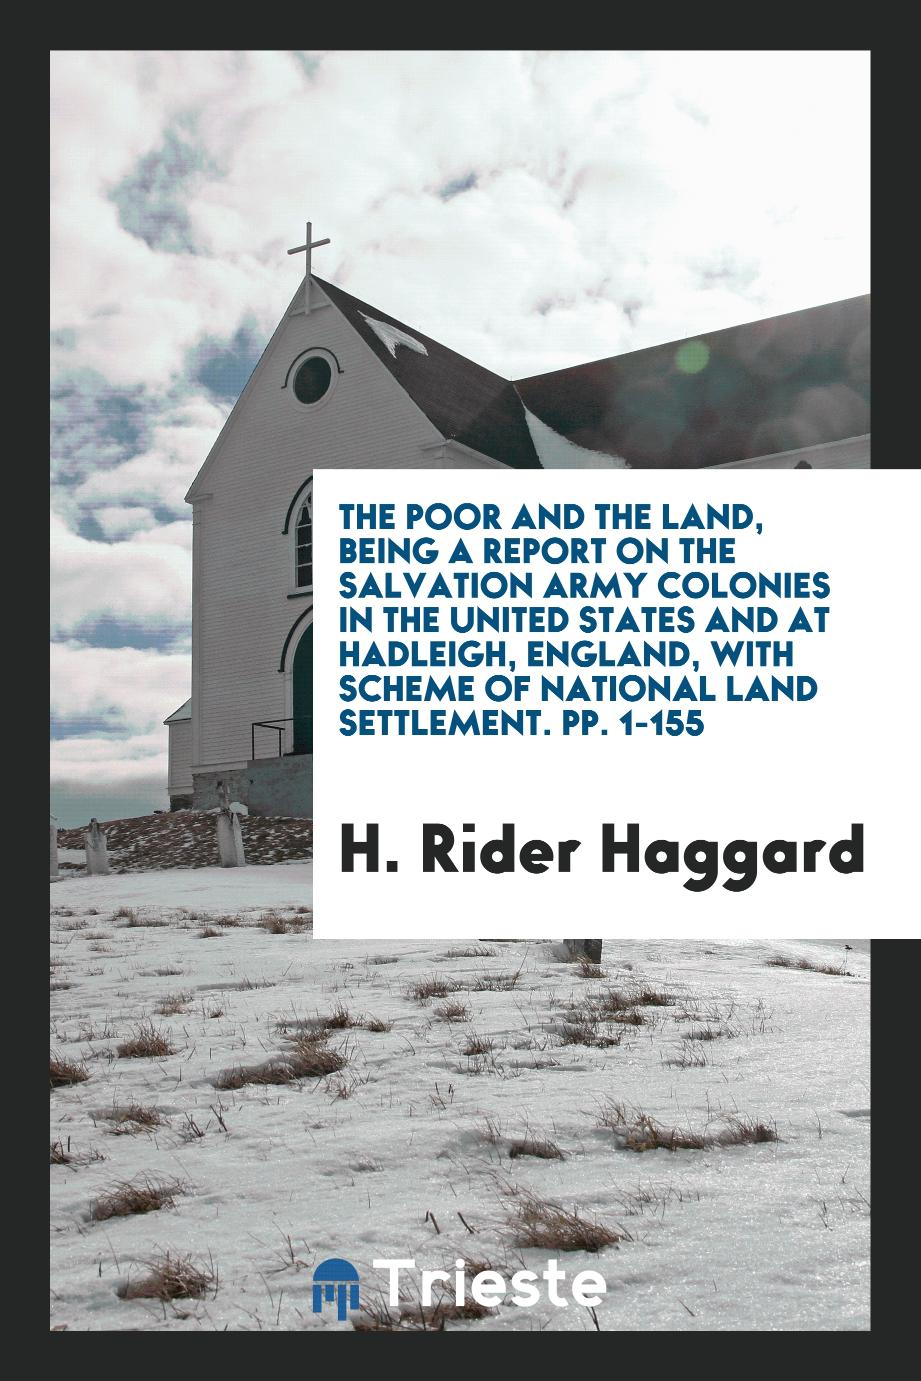 The Poor and the Land, Being a Report on the Salvation Army Colonies in the United States and at Hadleigh, England, with Scheme of National Land Settlement. pp. 1-155